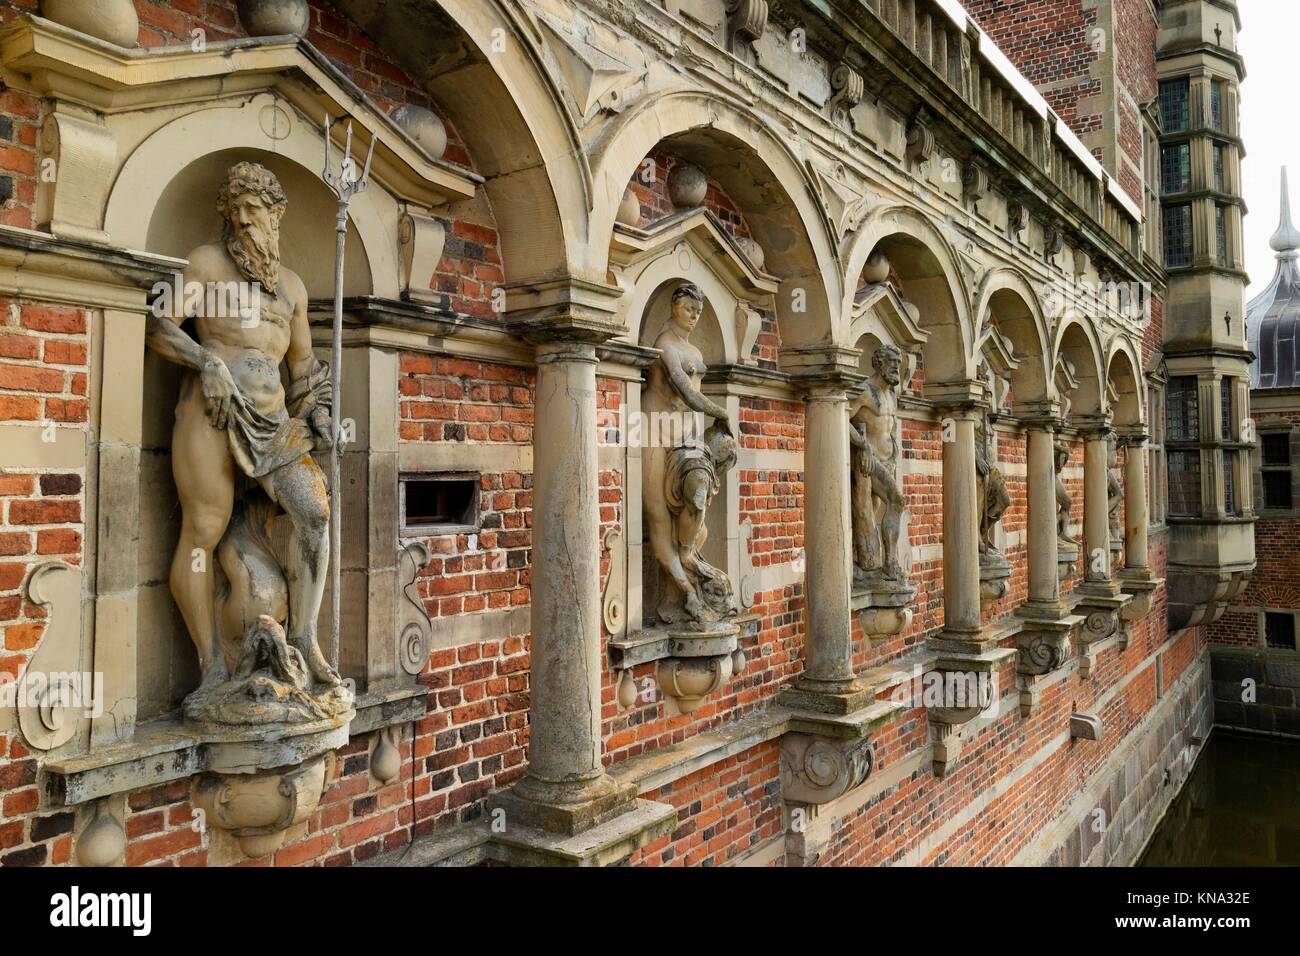 Sculptures at the Frederiksborg Castle in Hillerod, Denmark. - Stock Image